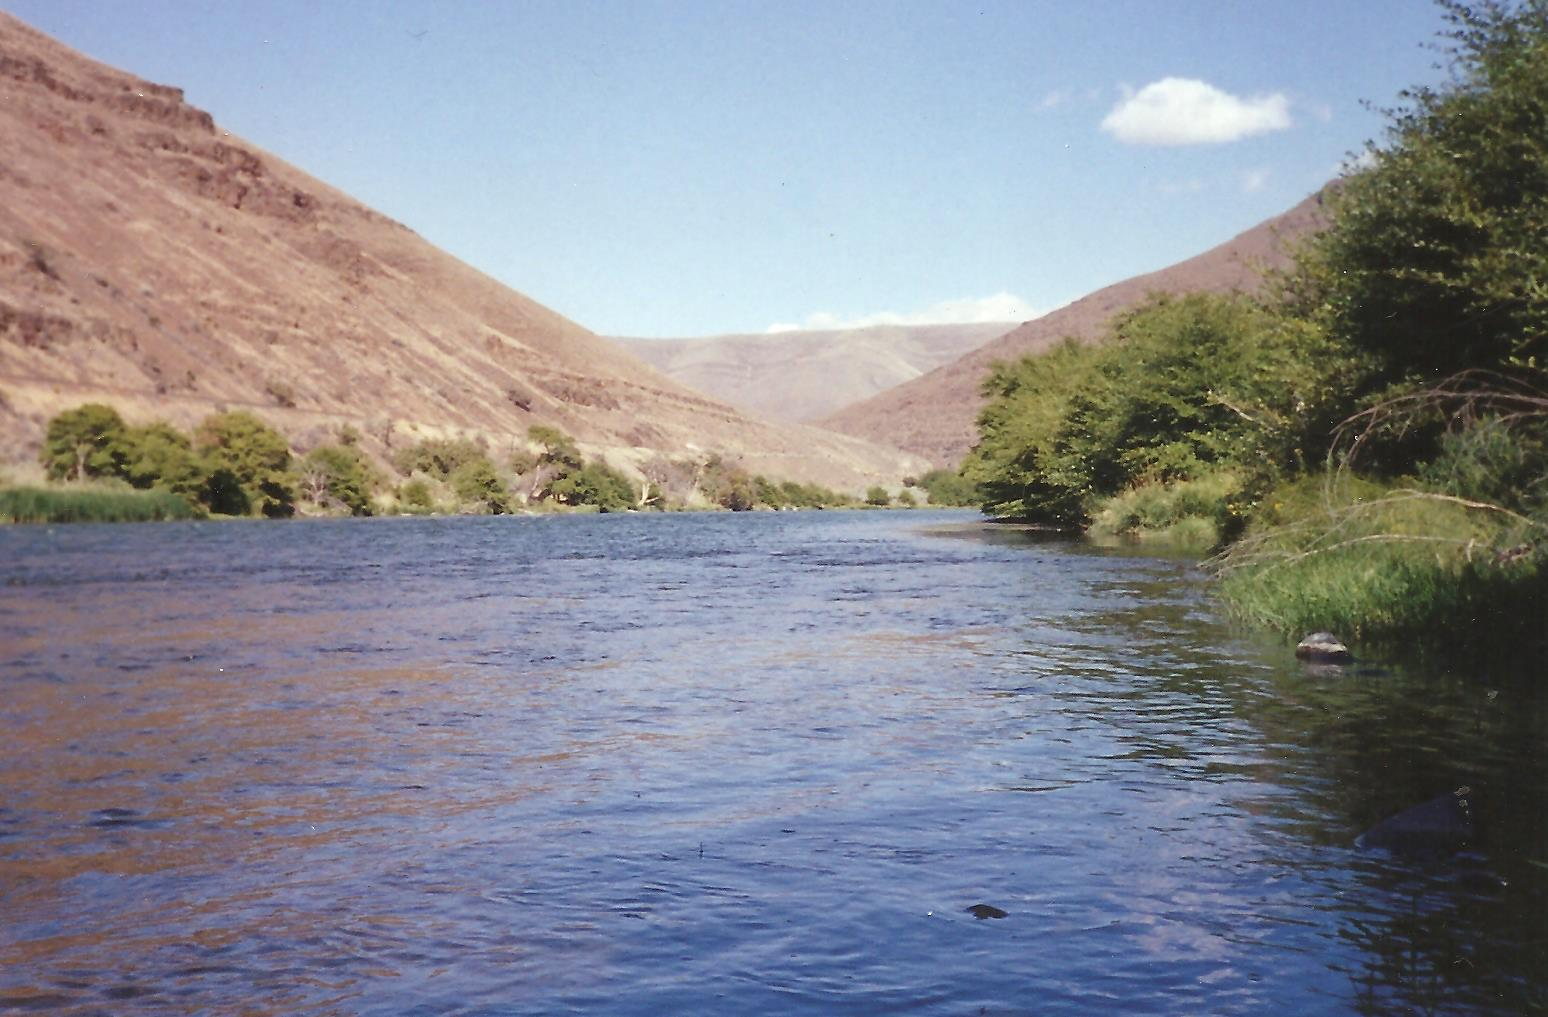 Fly Fishing with Doug Stewart: Fly Fishing the